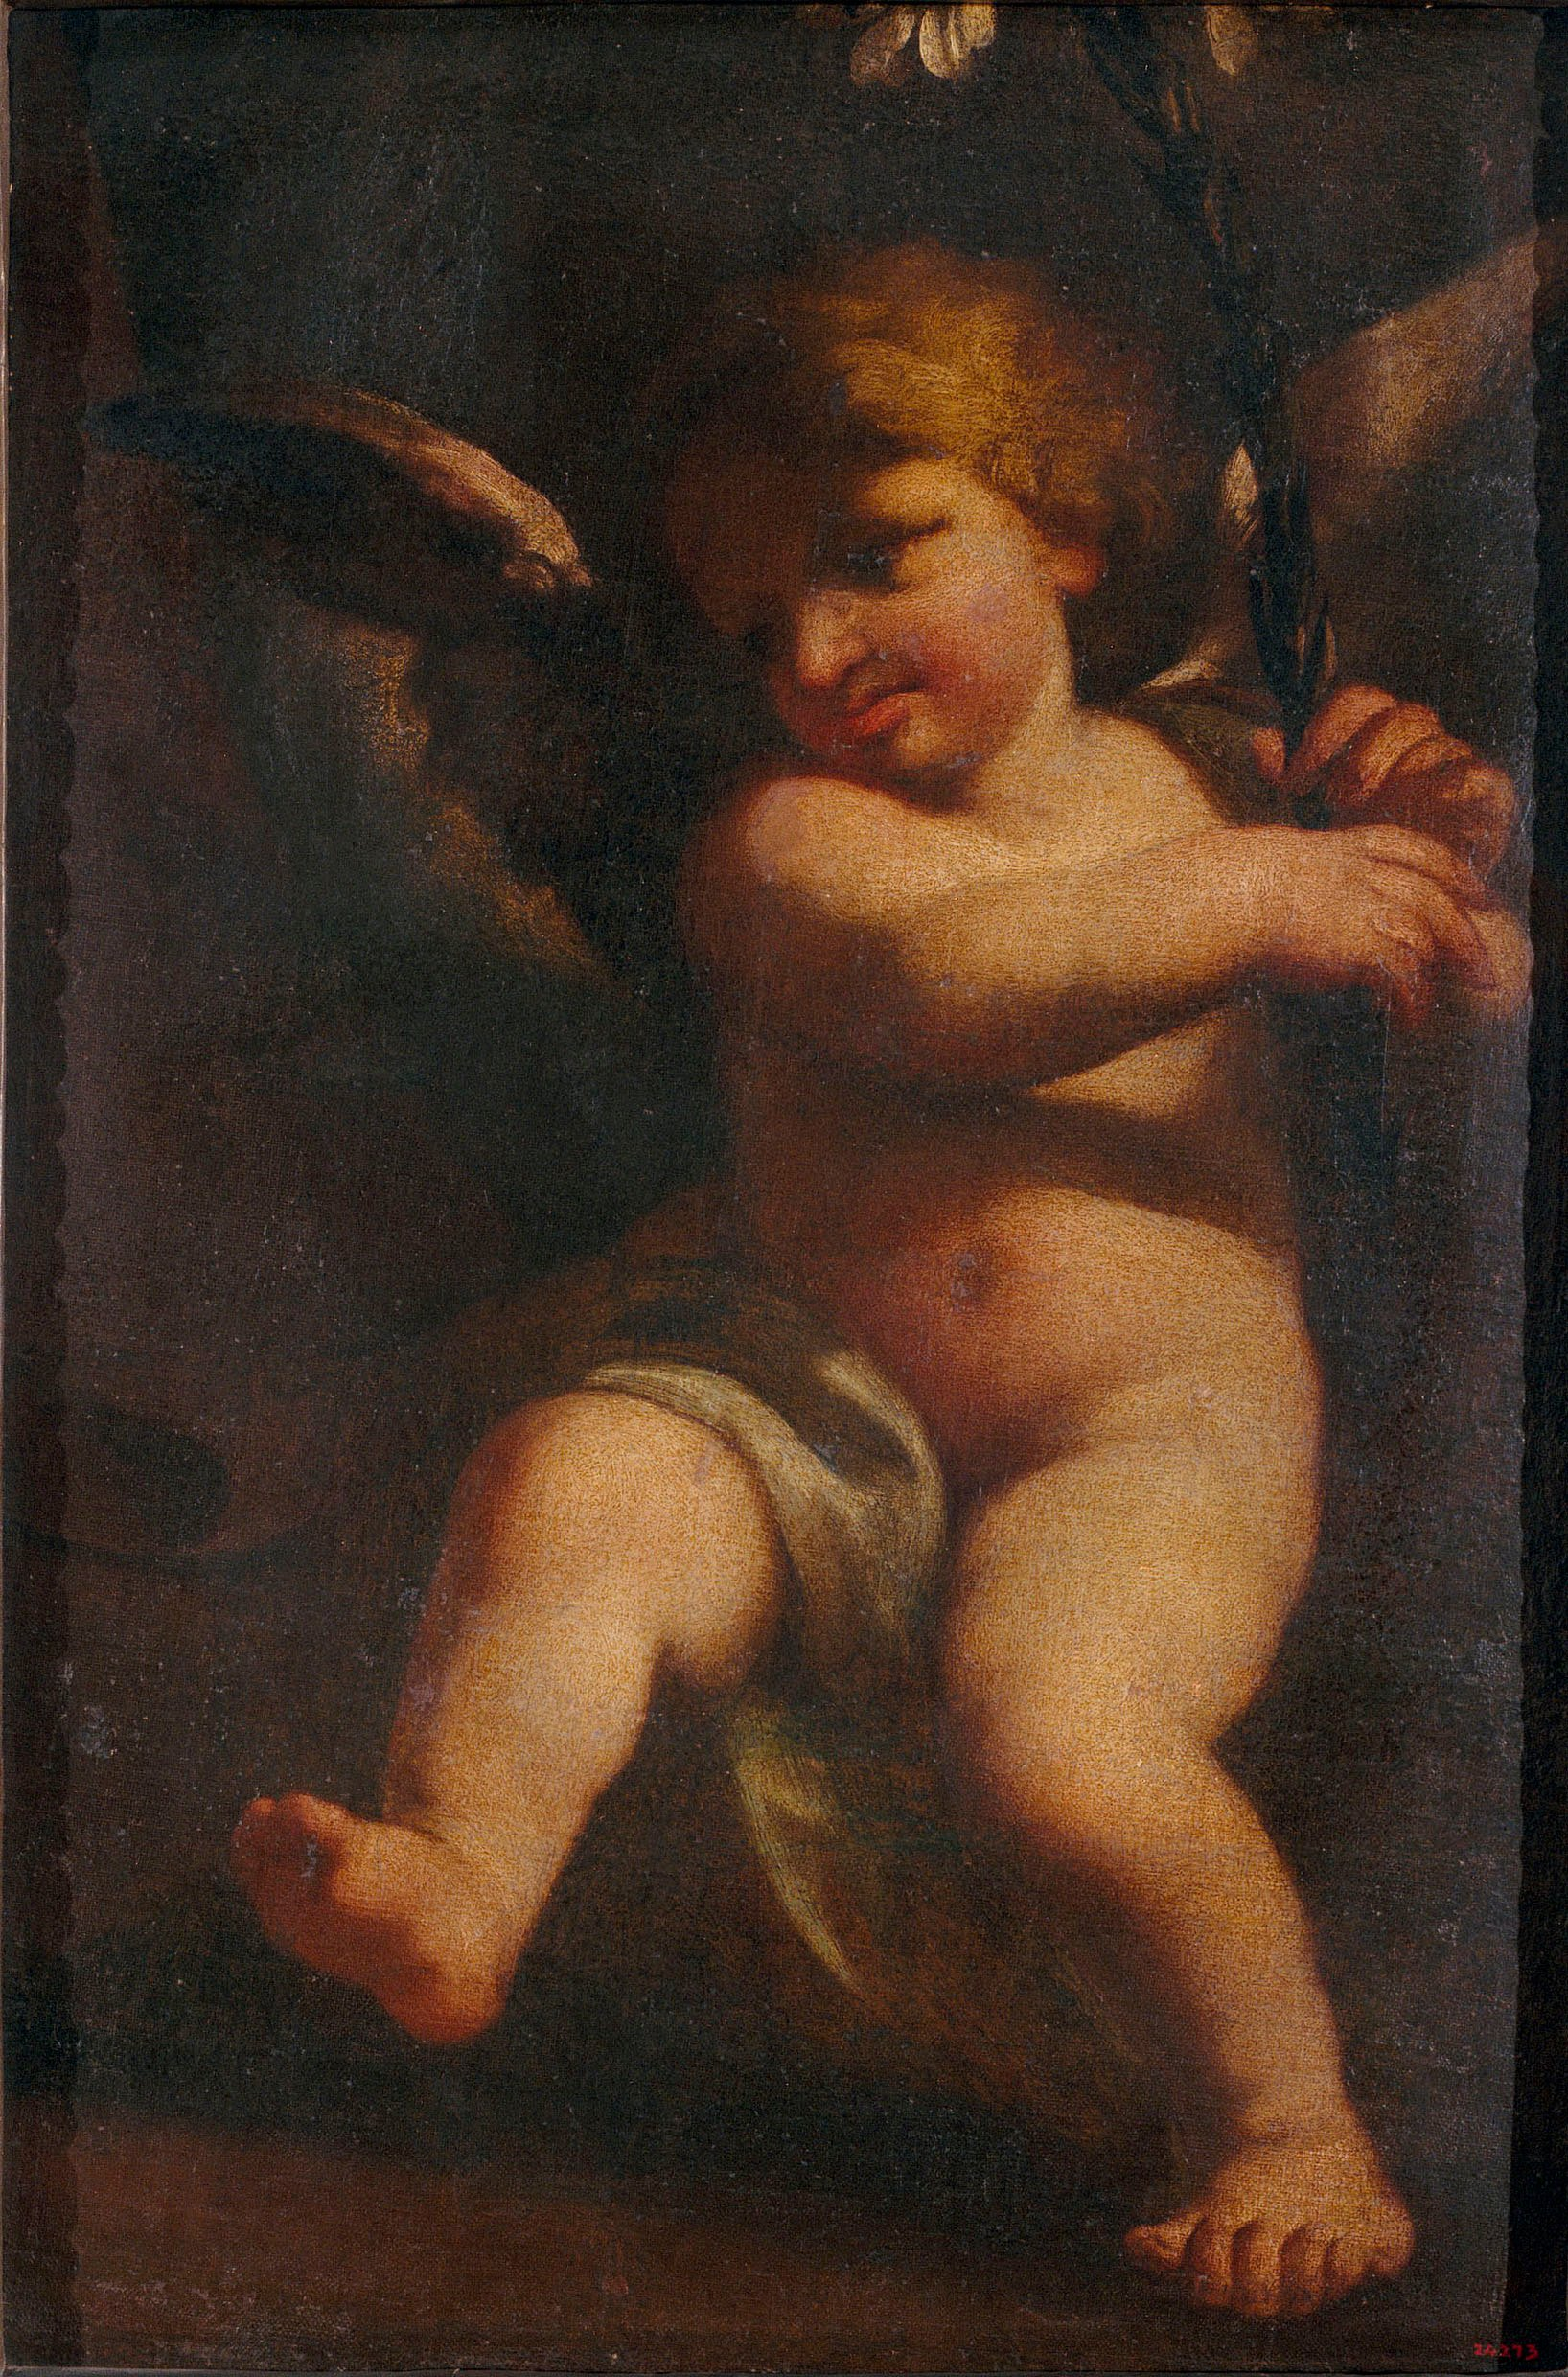 Pere Cuquet - Little Angel - 17th century